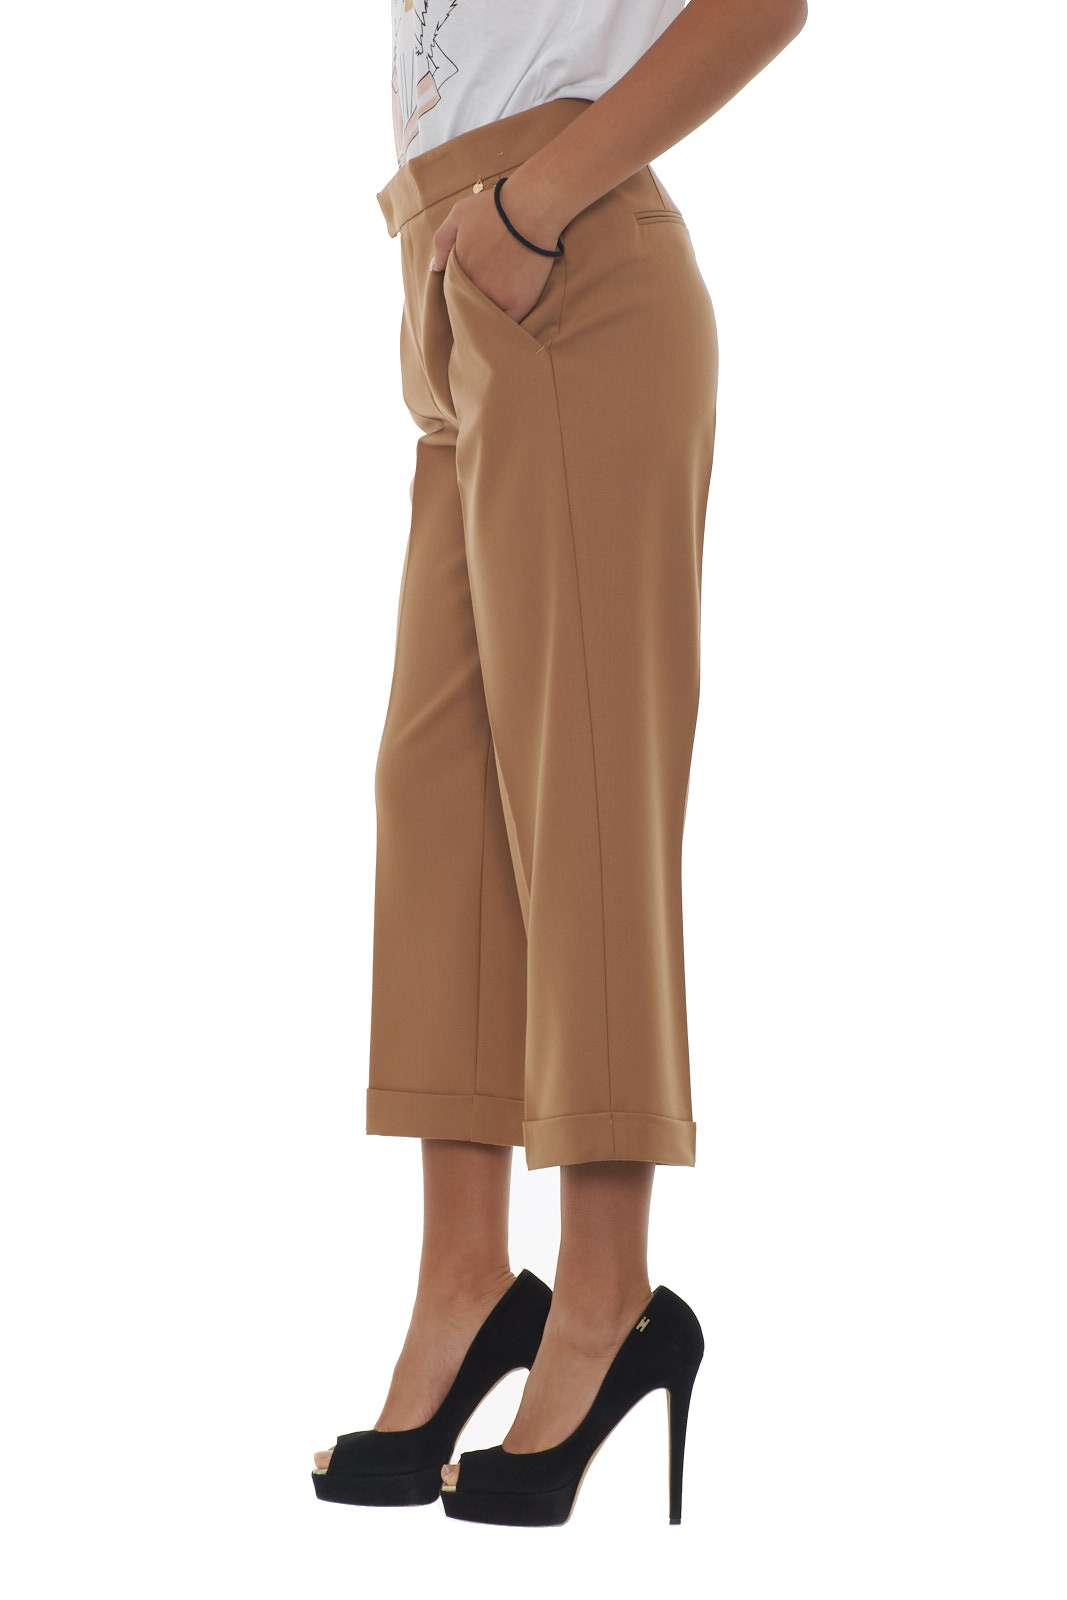 https://www.parmax.com/media/catalog/product/a/i/AI-outlet_parmax-pantaloni-donna-Twin-Set-192TT2455-B.jpg